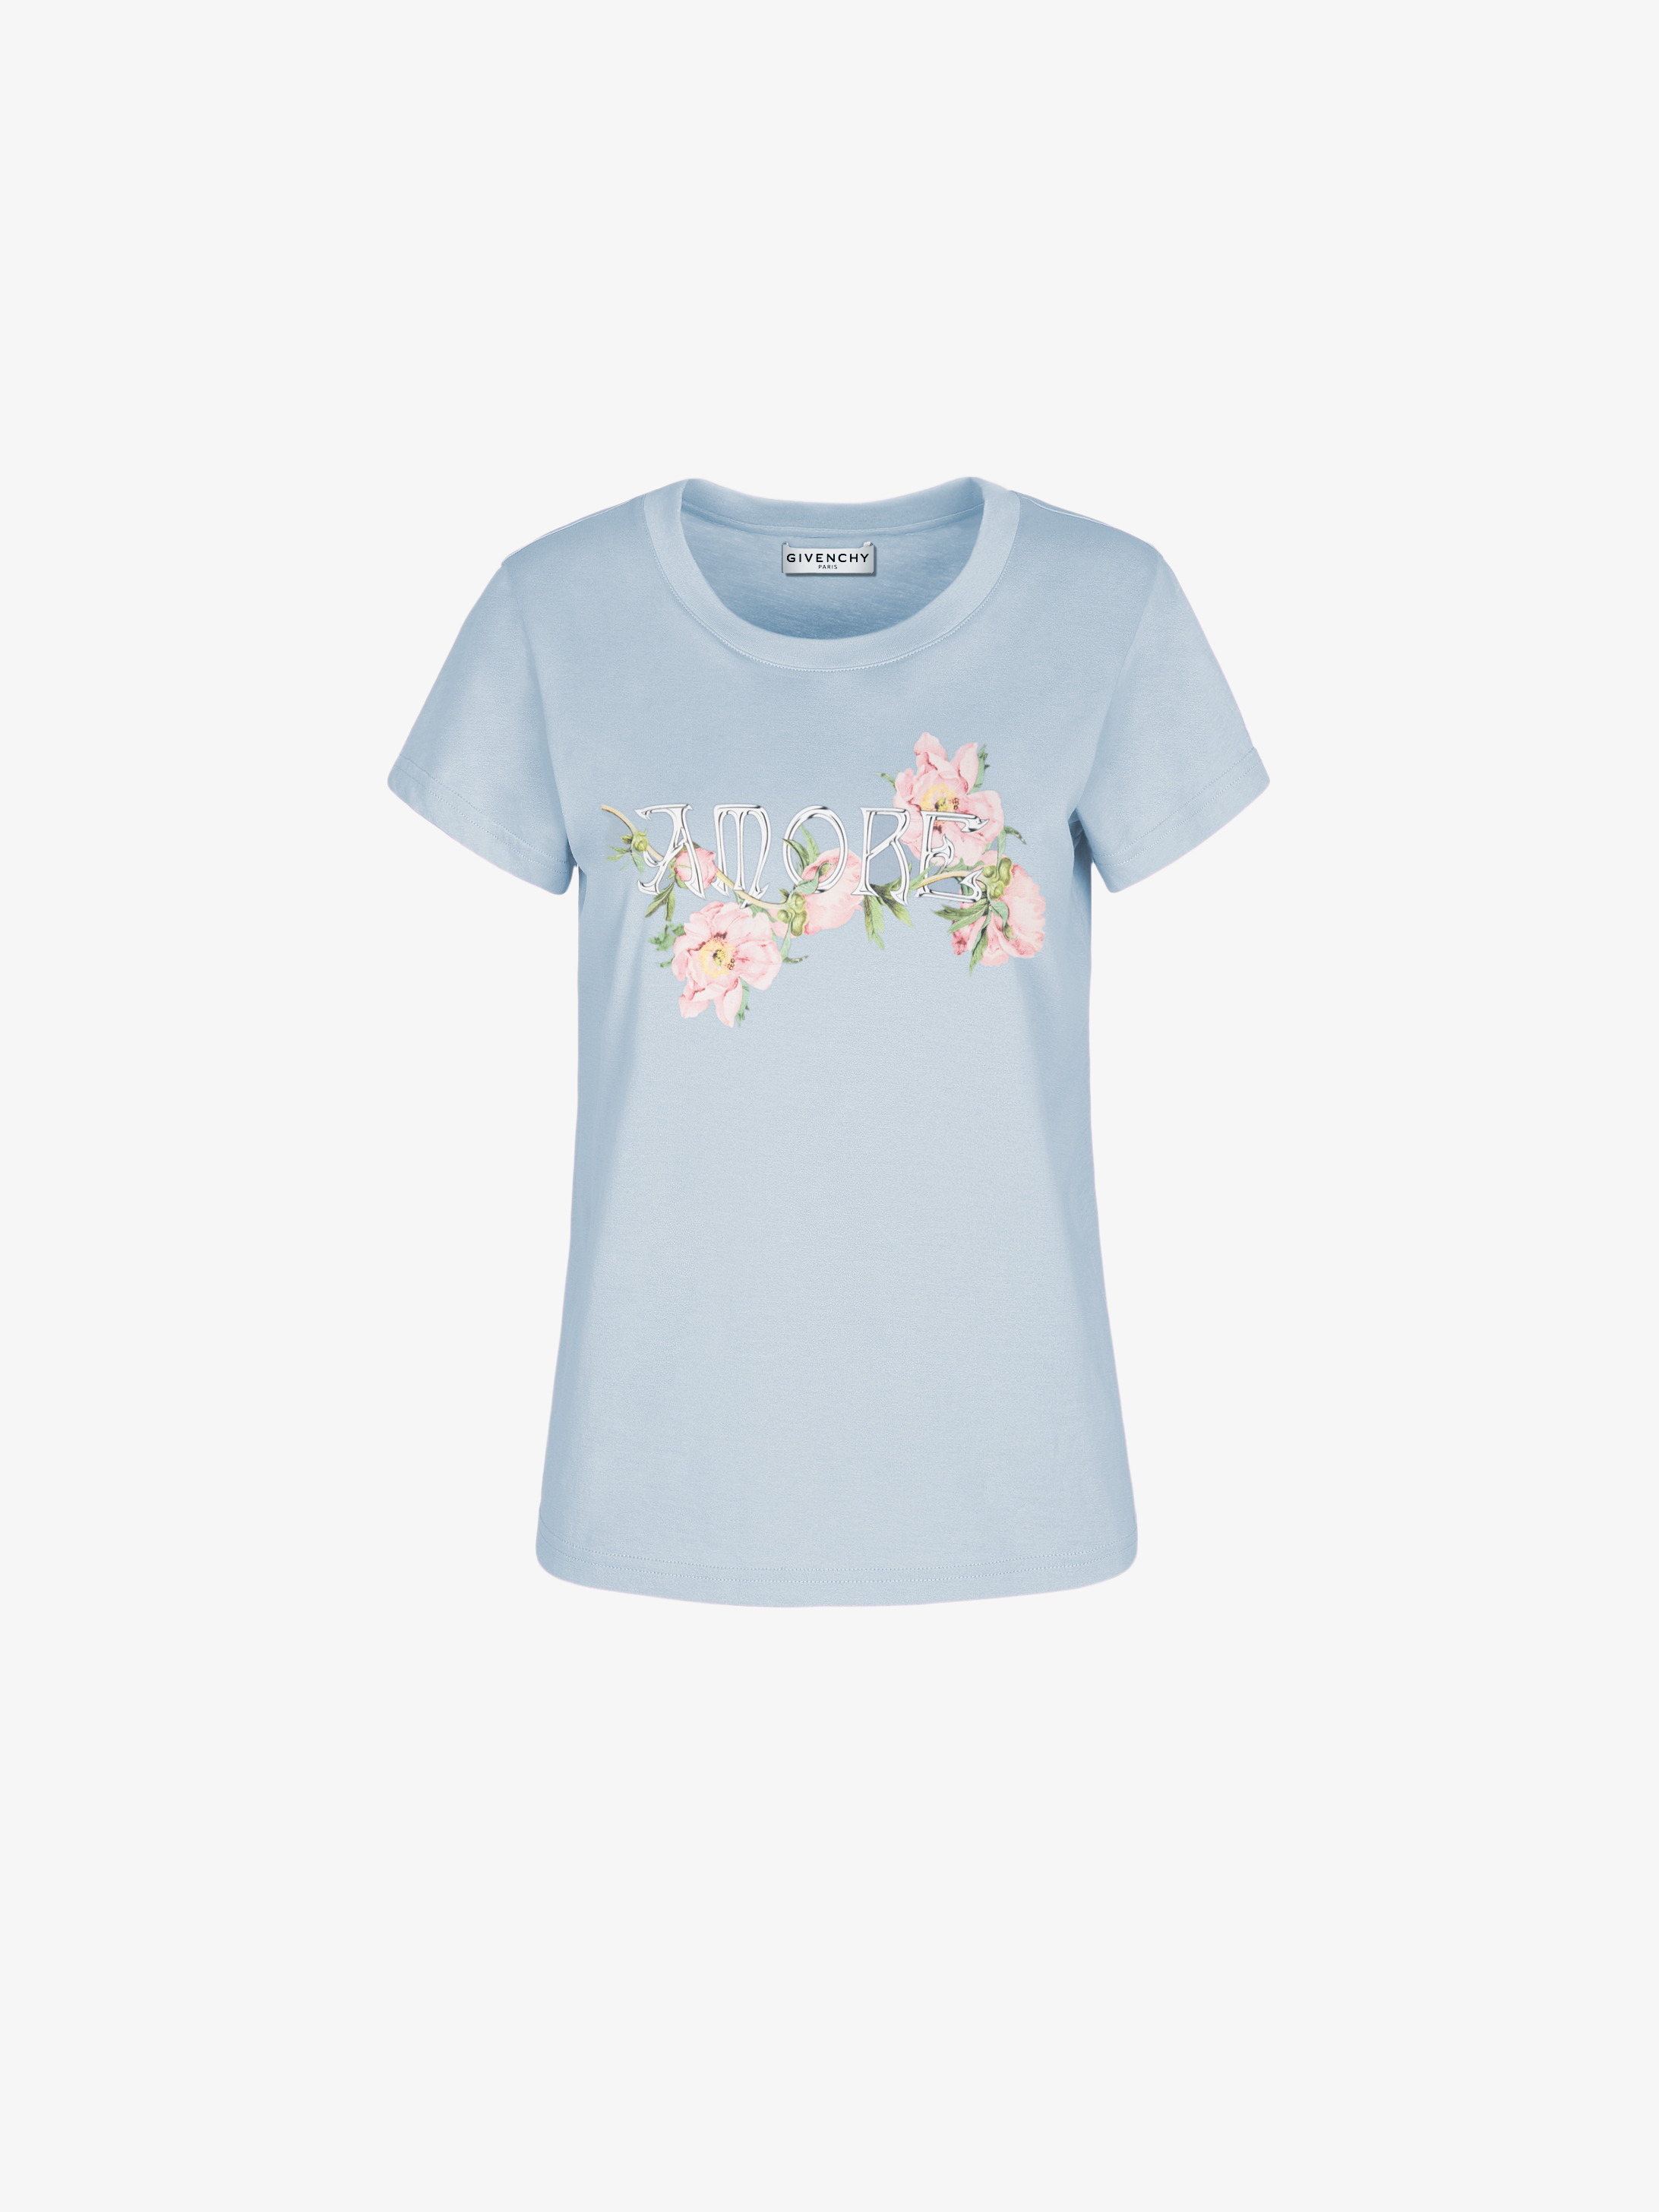 GIVENCHY Amore slim fit printed T-shirt